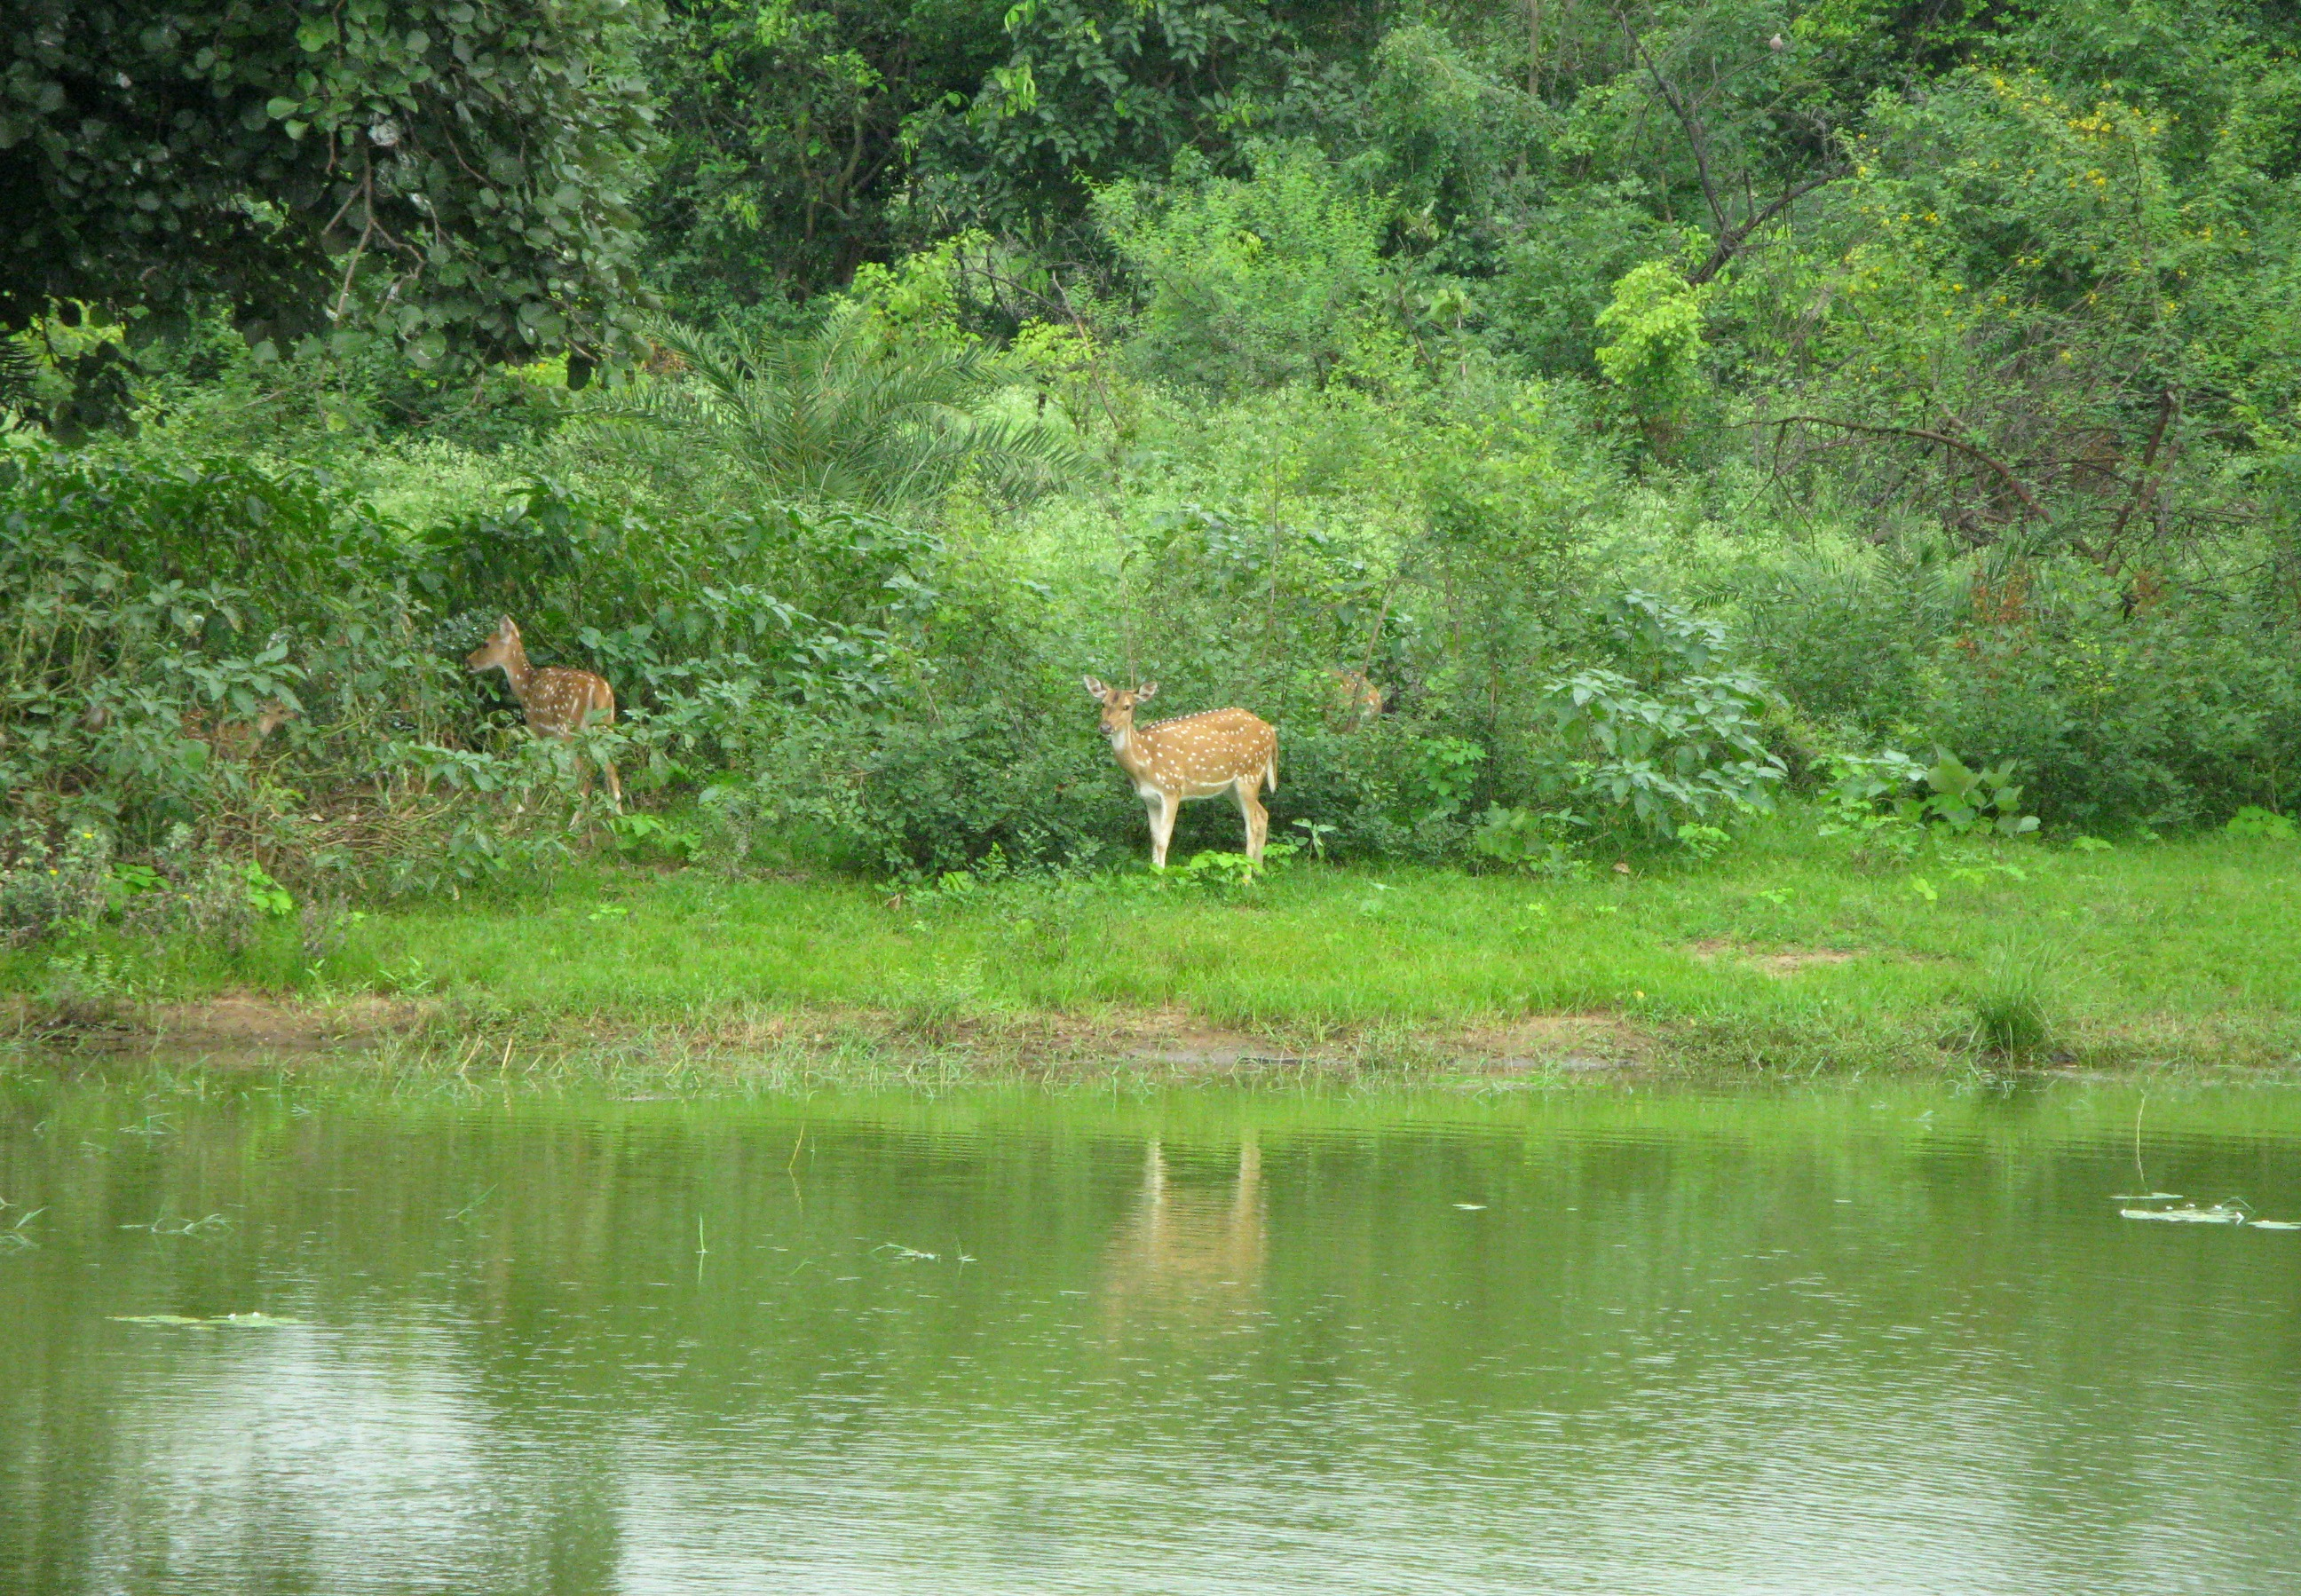 https://upload.wikimedia.org/wikipedia/commons/8/89/Cheetal_(spotted_deer)_at_Van_Vihar_National_Park.jpg